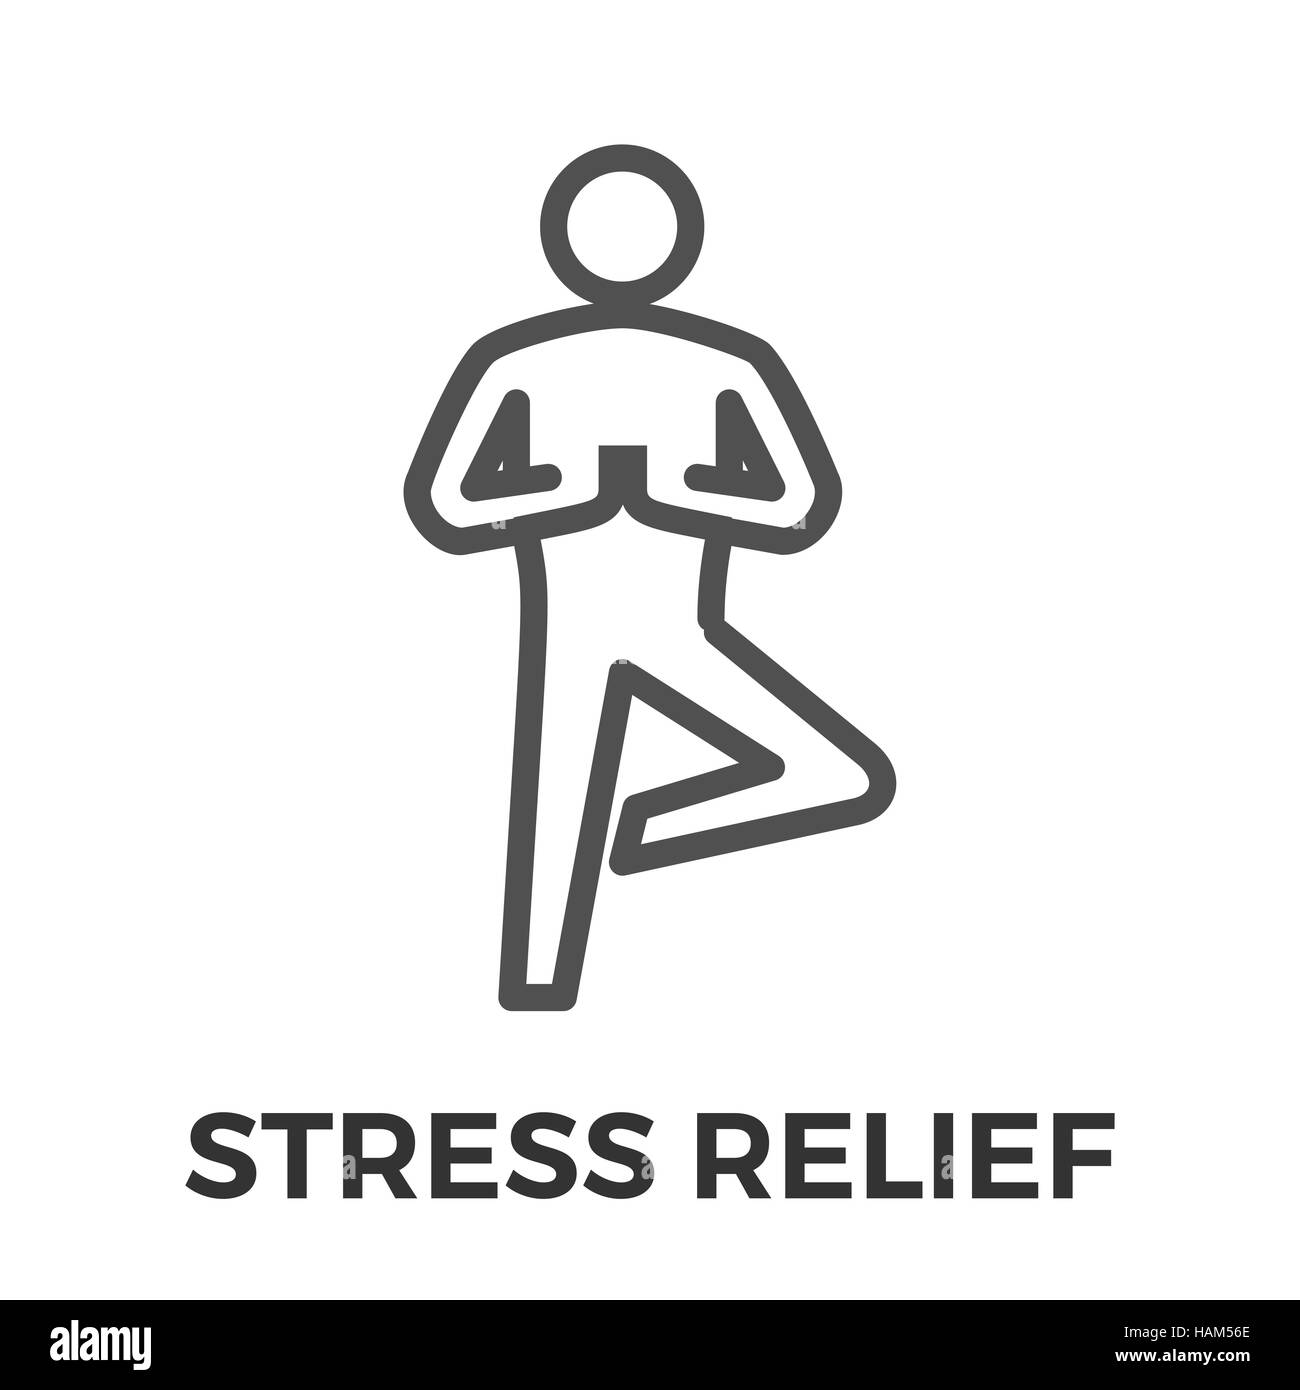 Stress Relief Thin Line Vector Icon Isolated on the White Background. - Stock Image